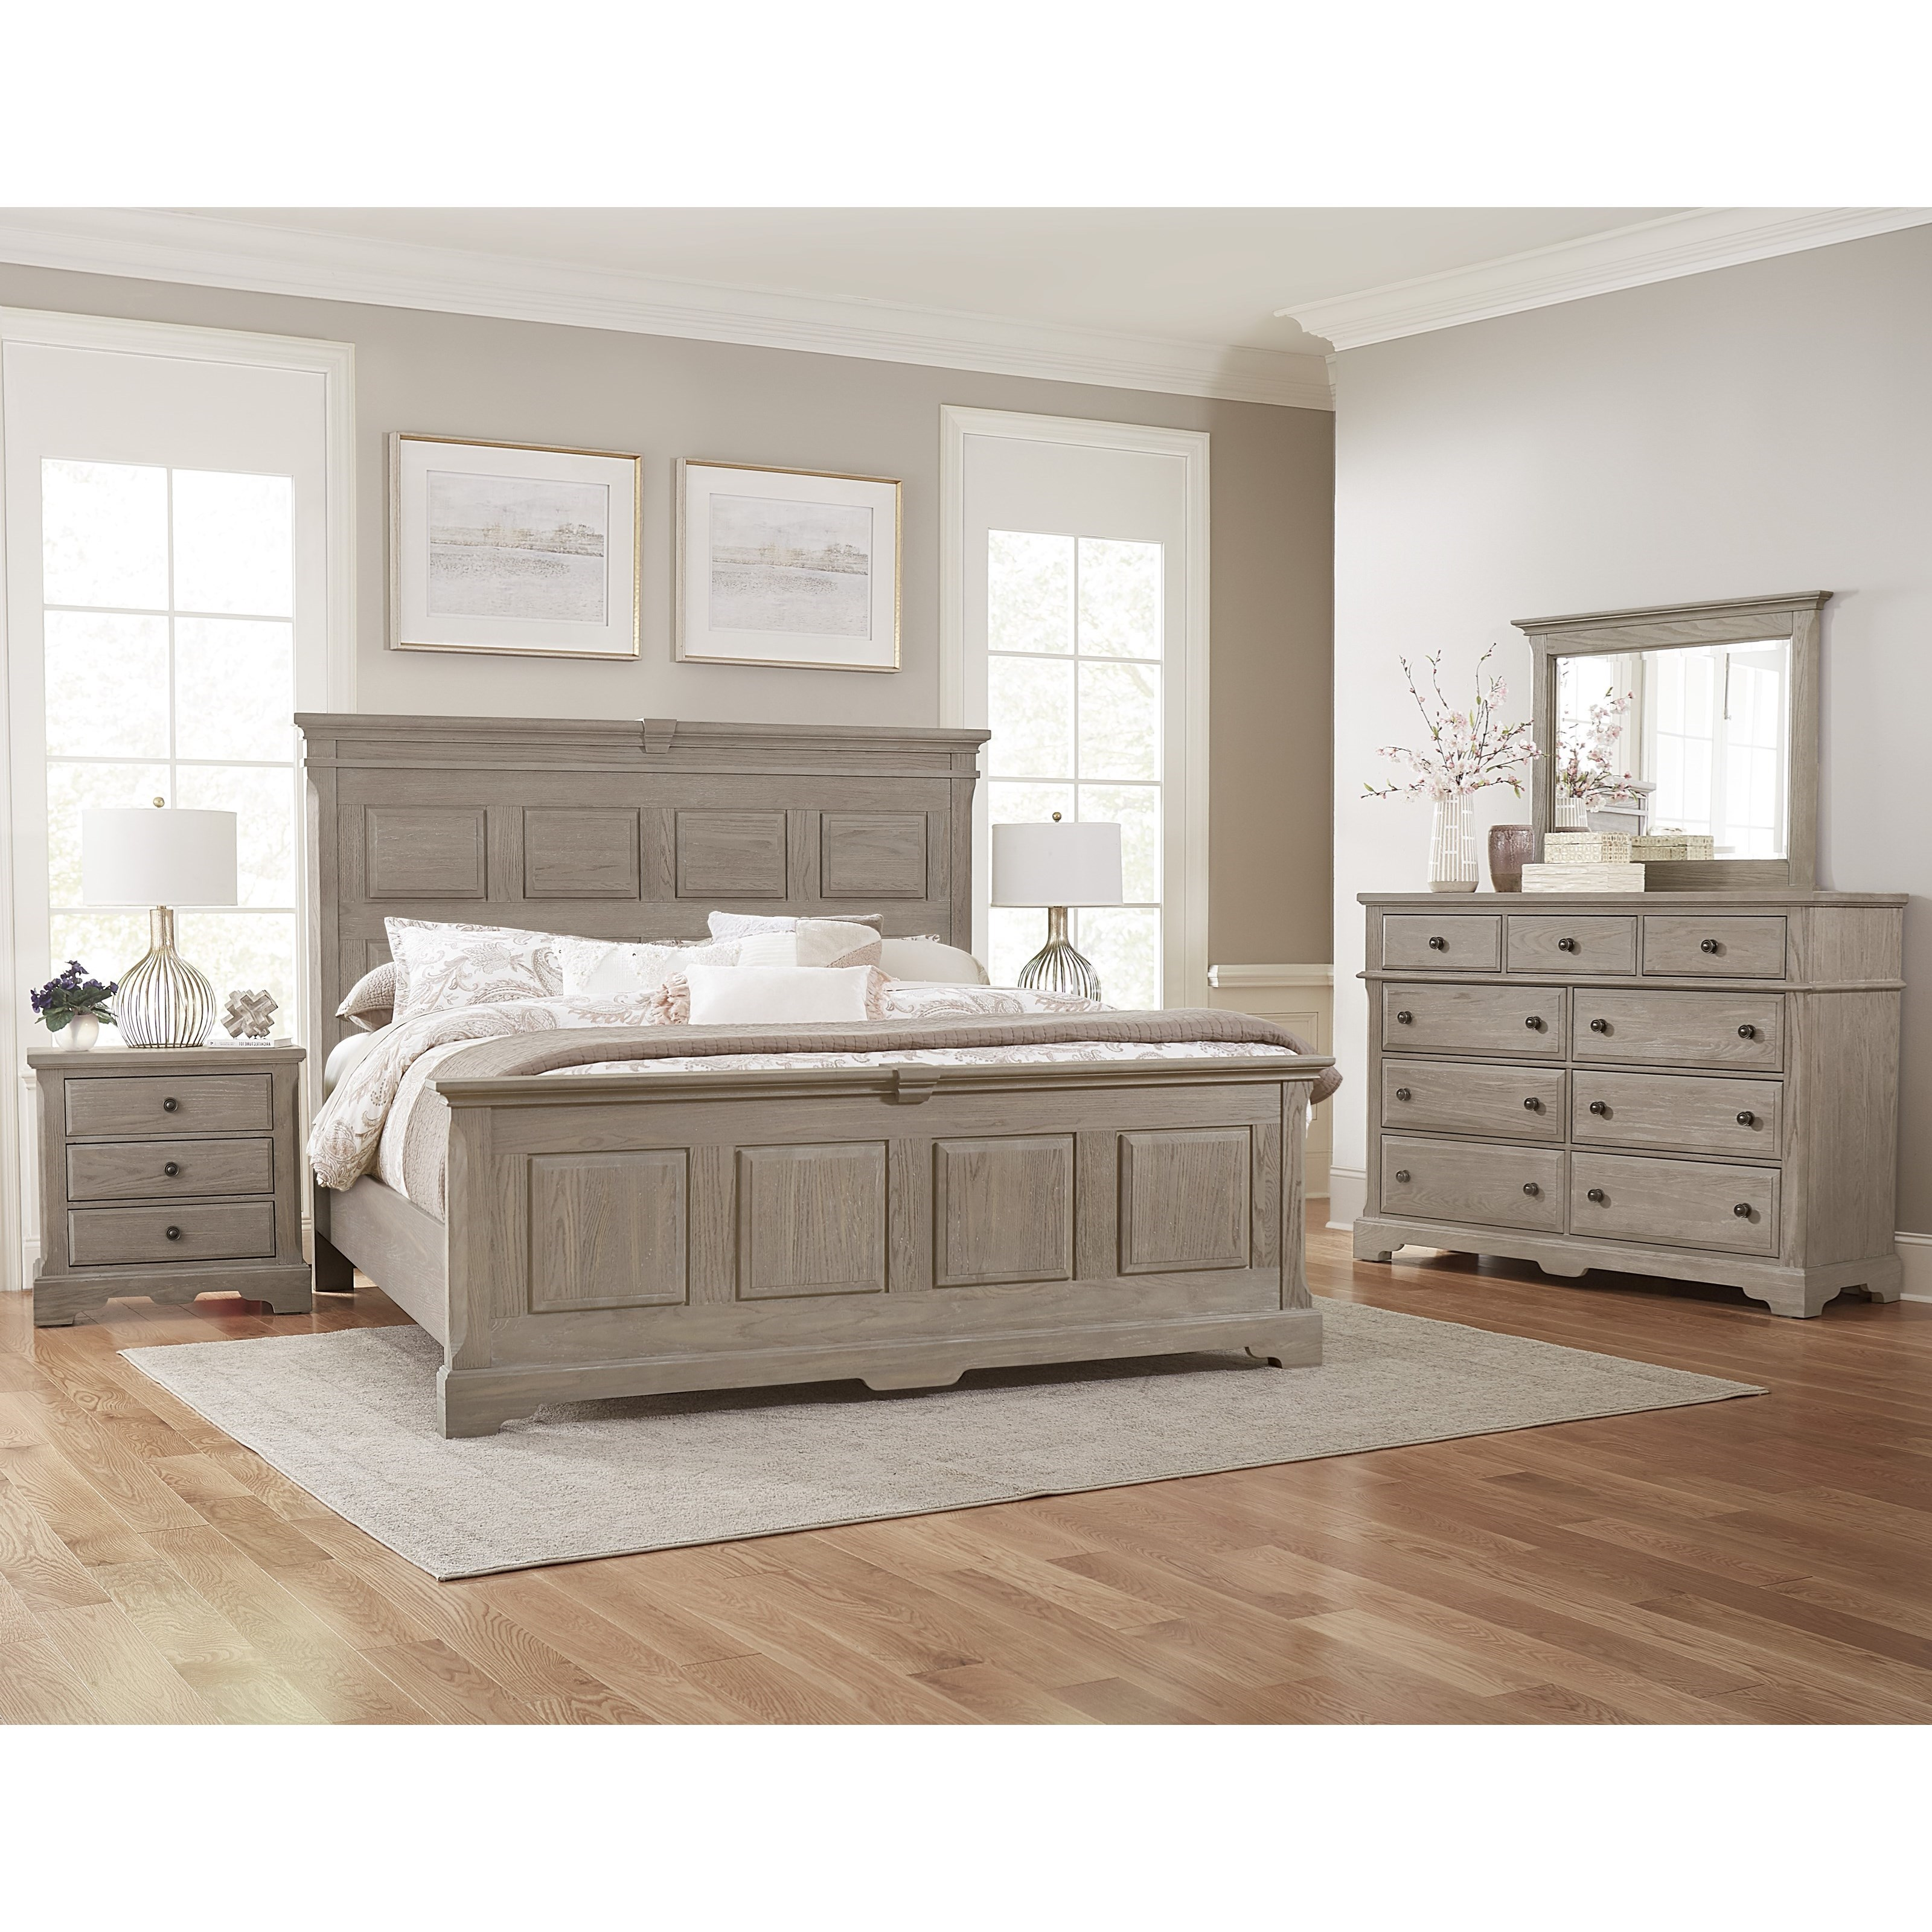 Heritage King Bedroom Group by Artisan & Post at Northeast Factory Direct